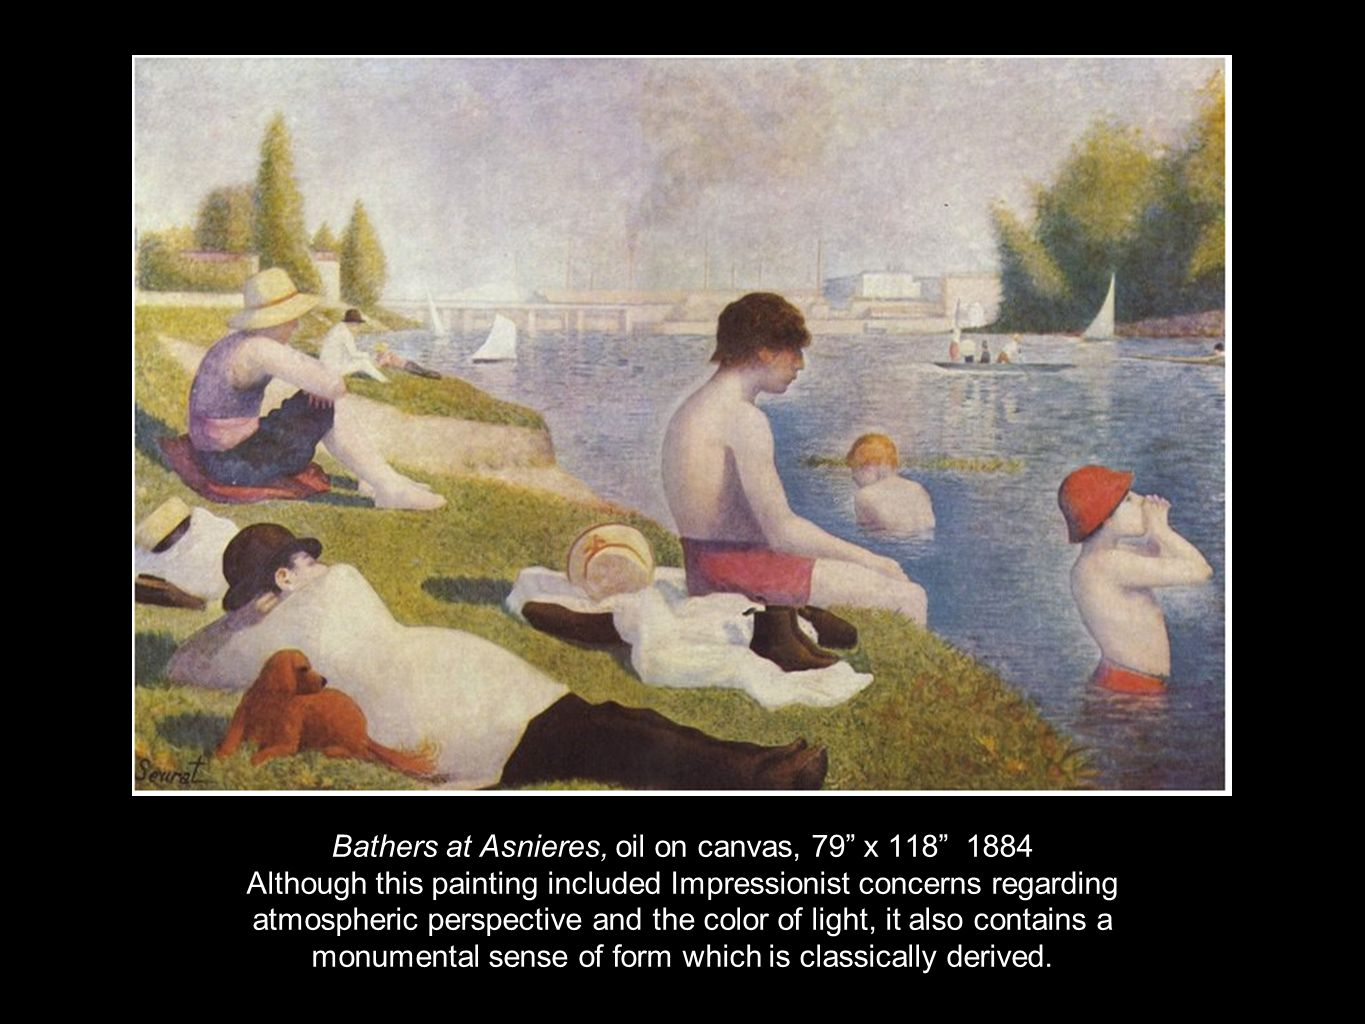 Bathers at Asnieres, oil on canvas, 79 x Although this painting included Impressionist concerns regarding atmospheric perspective and the color of light, it also contains a monumental sense of form which is classically derived.